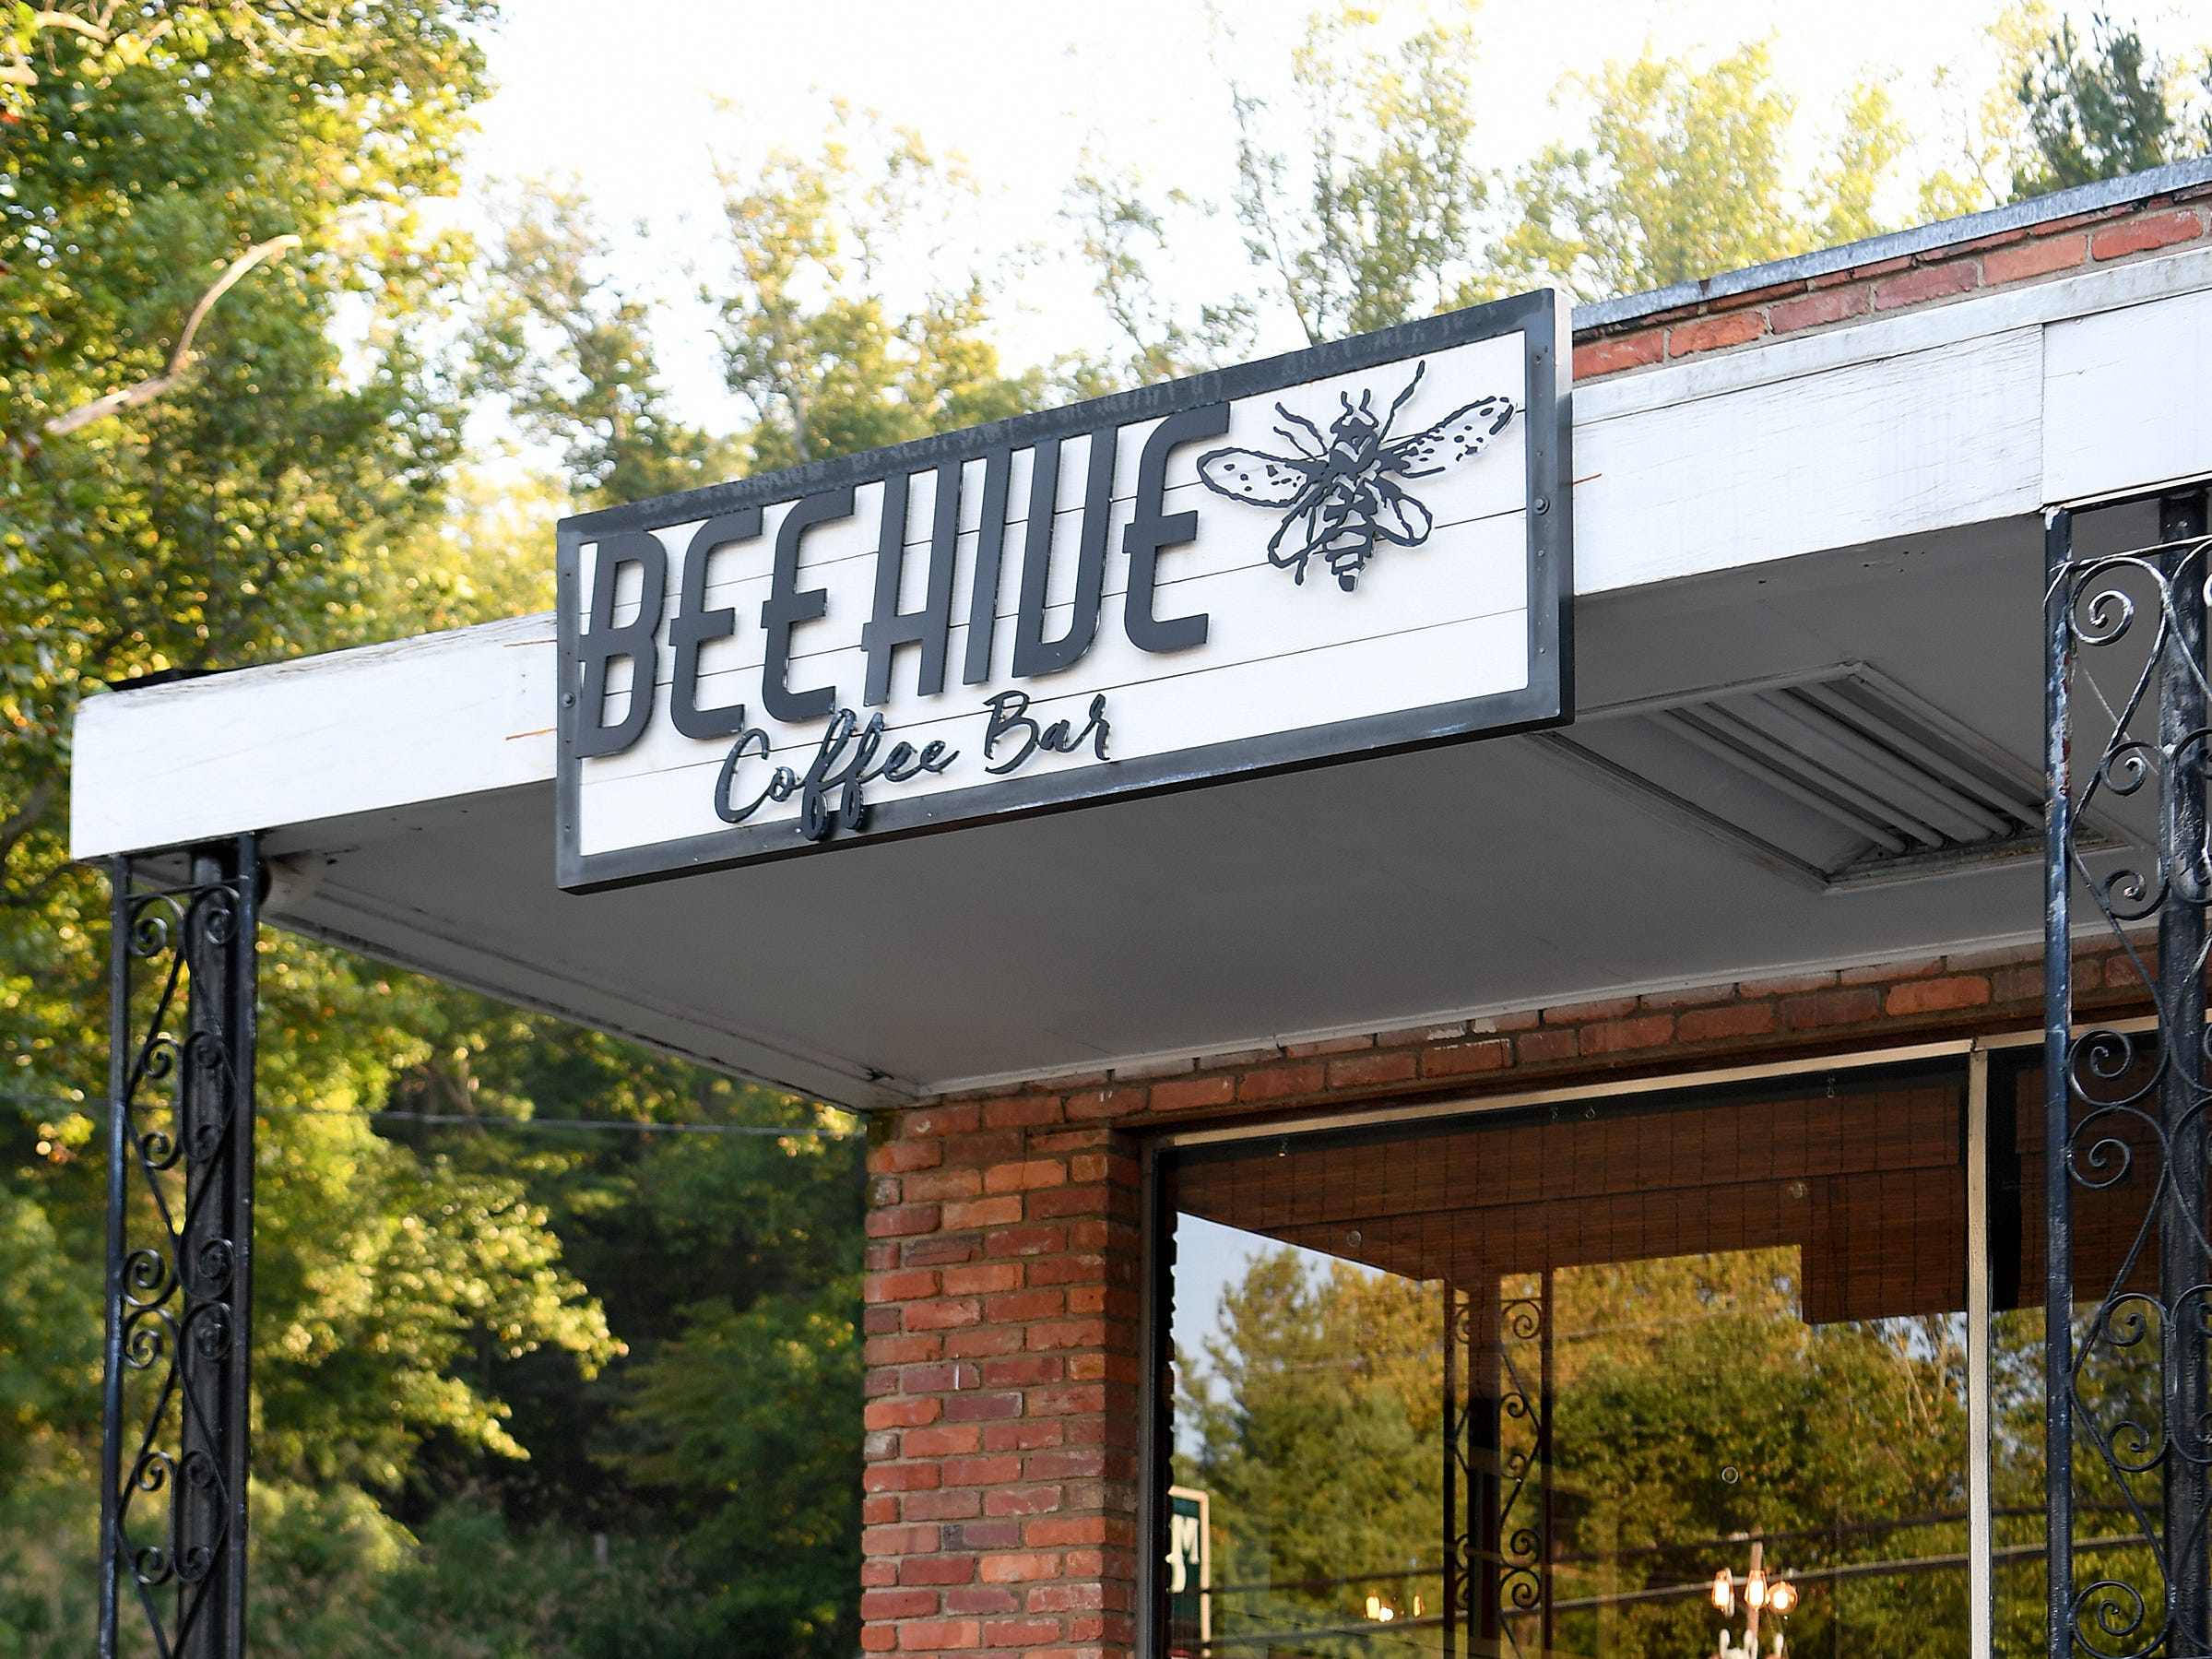 The Beehive Coffee Bar in Arden is open every day and serves up coffee, espresso drinks, teas and fresh, house-made baked goods.